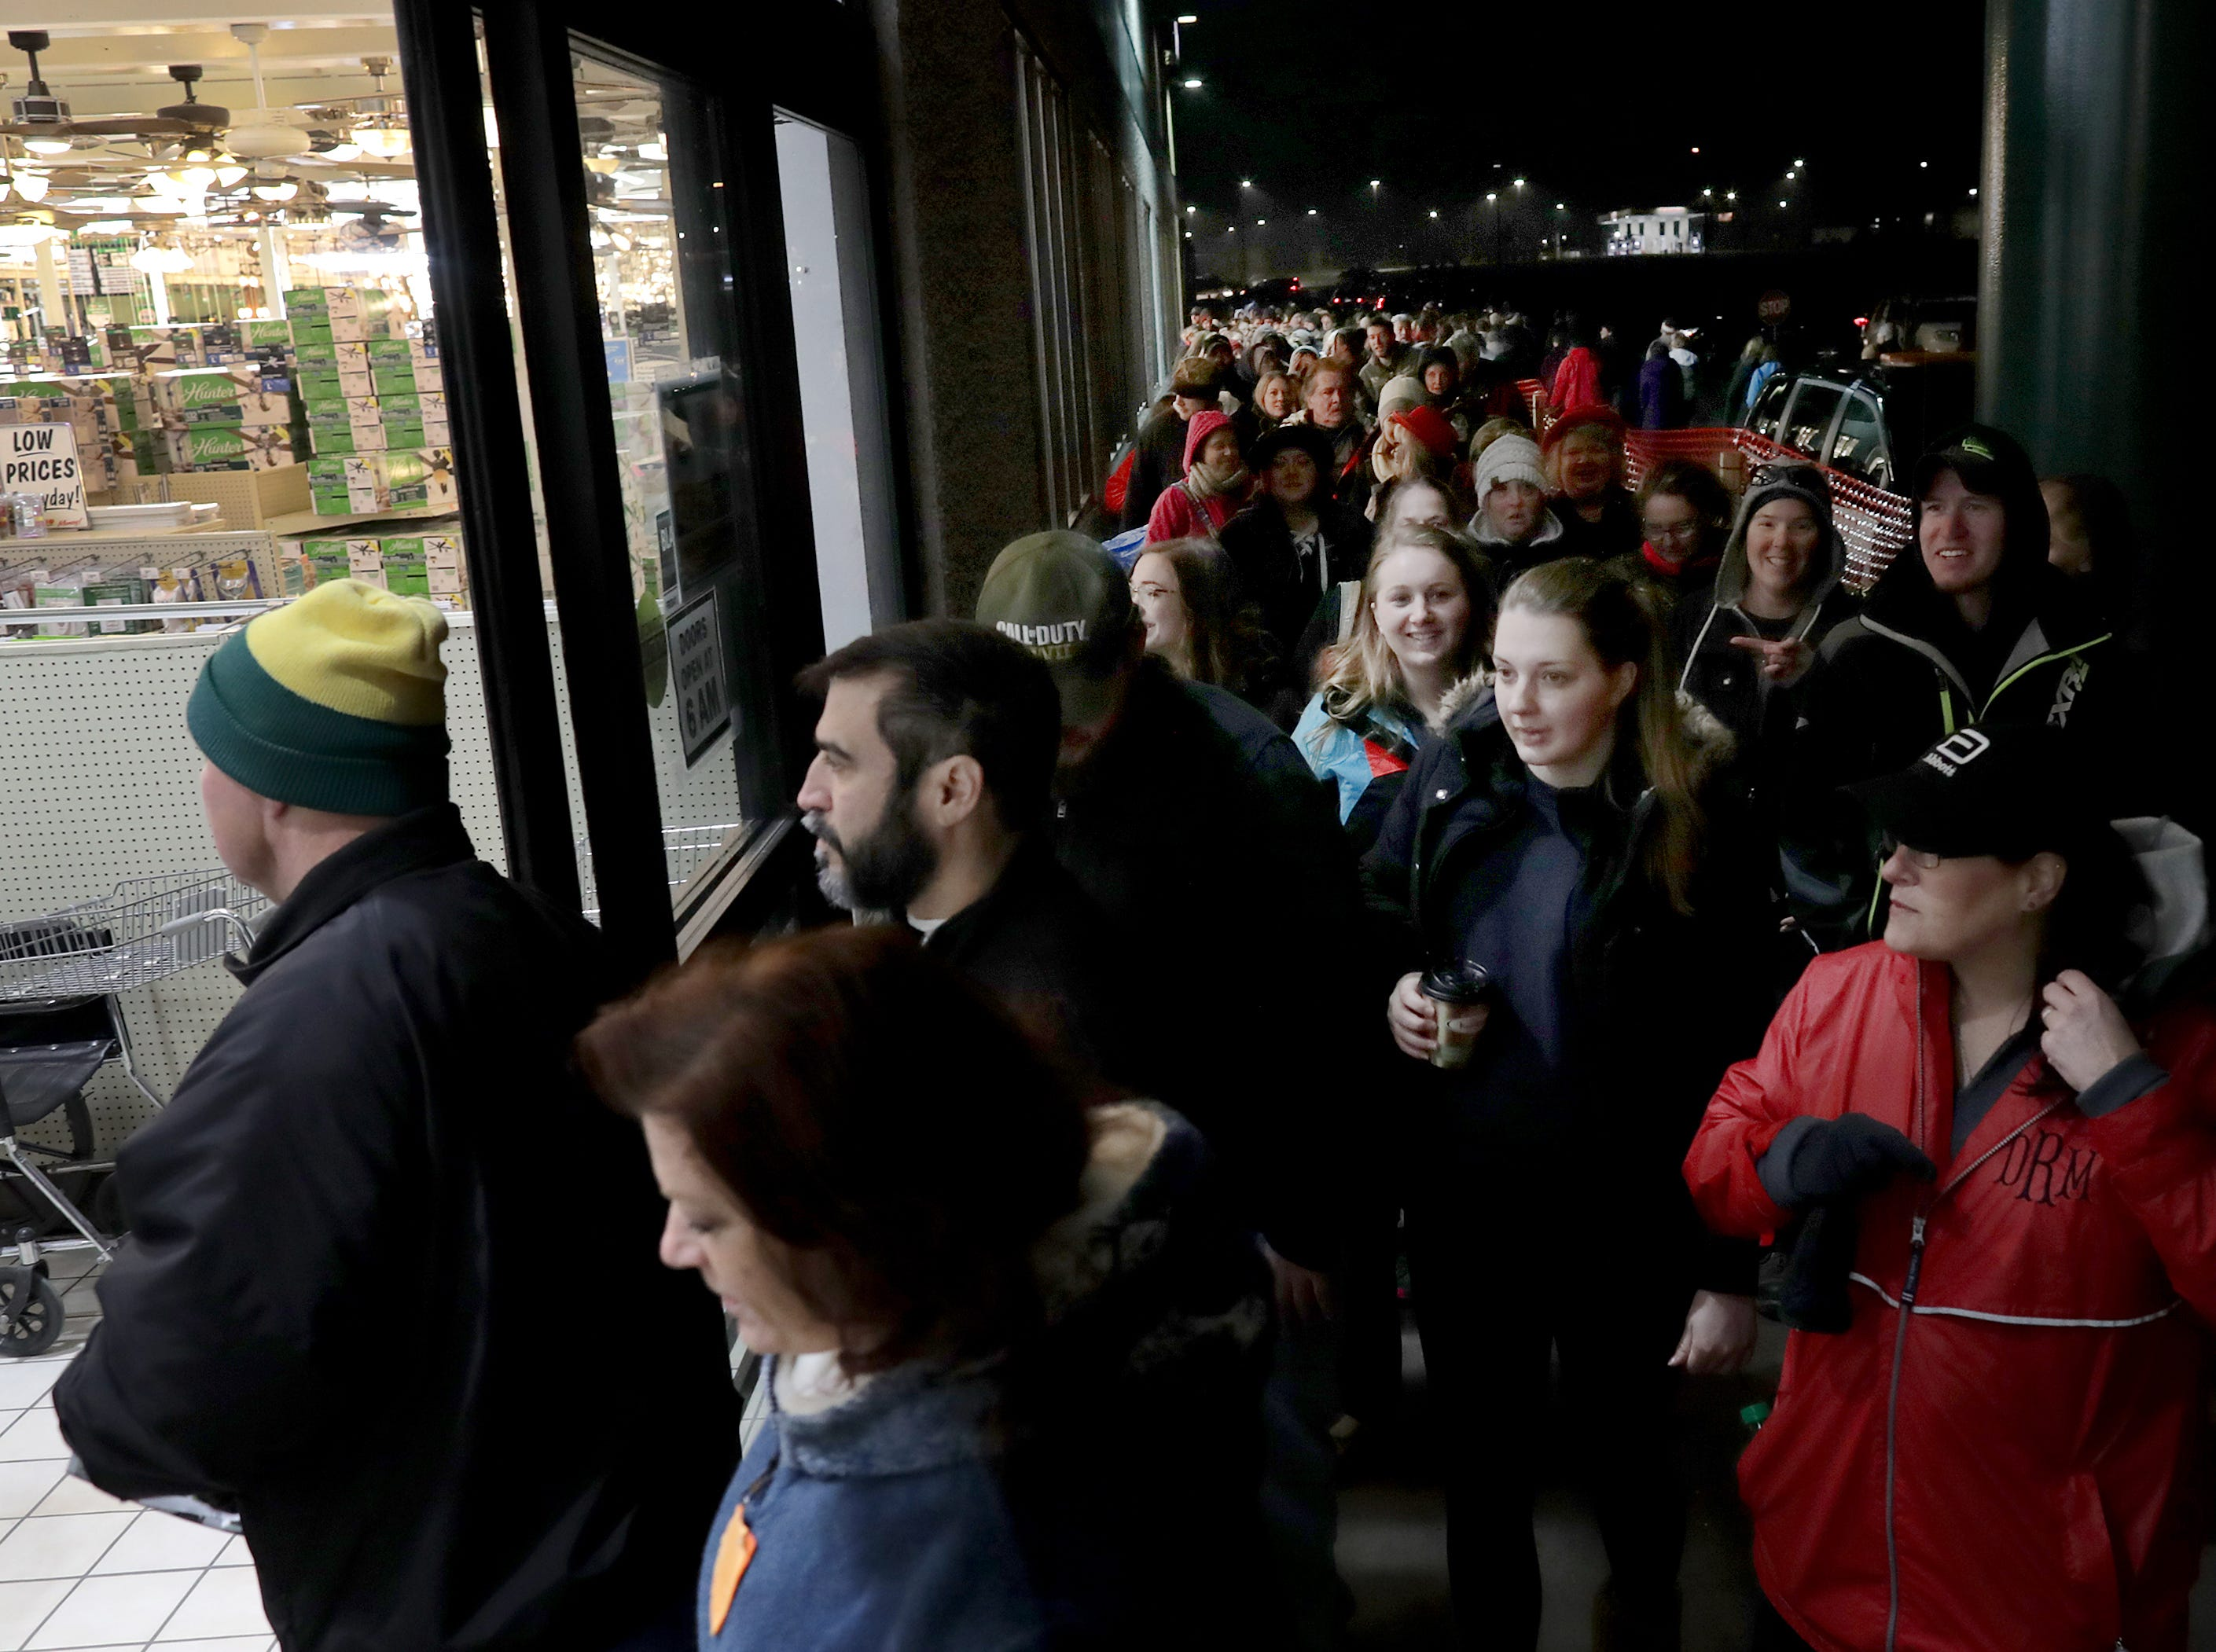 Shoppers looking for Black Friday deals stream through the doors at Menards on Friday, Nov. 23, 2018 in Grand Chute, WisWm. Glasheen/USA TODAY NETWORK-Wisconsin.